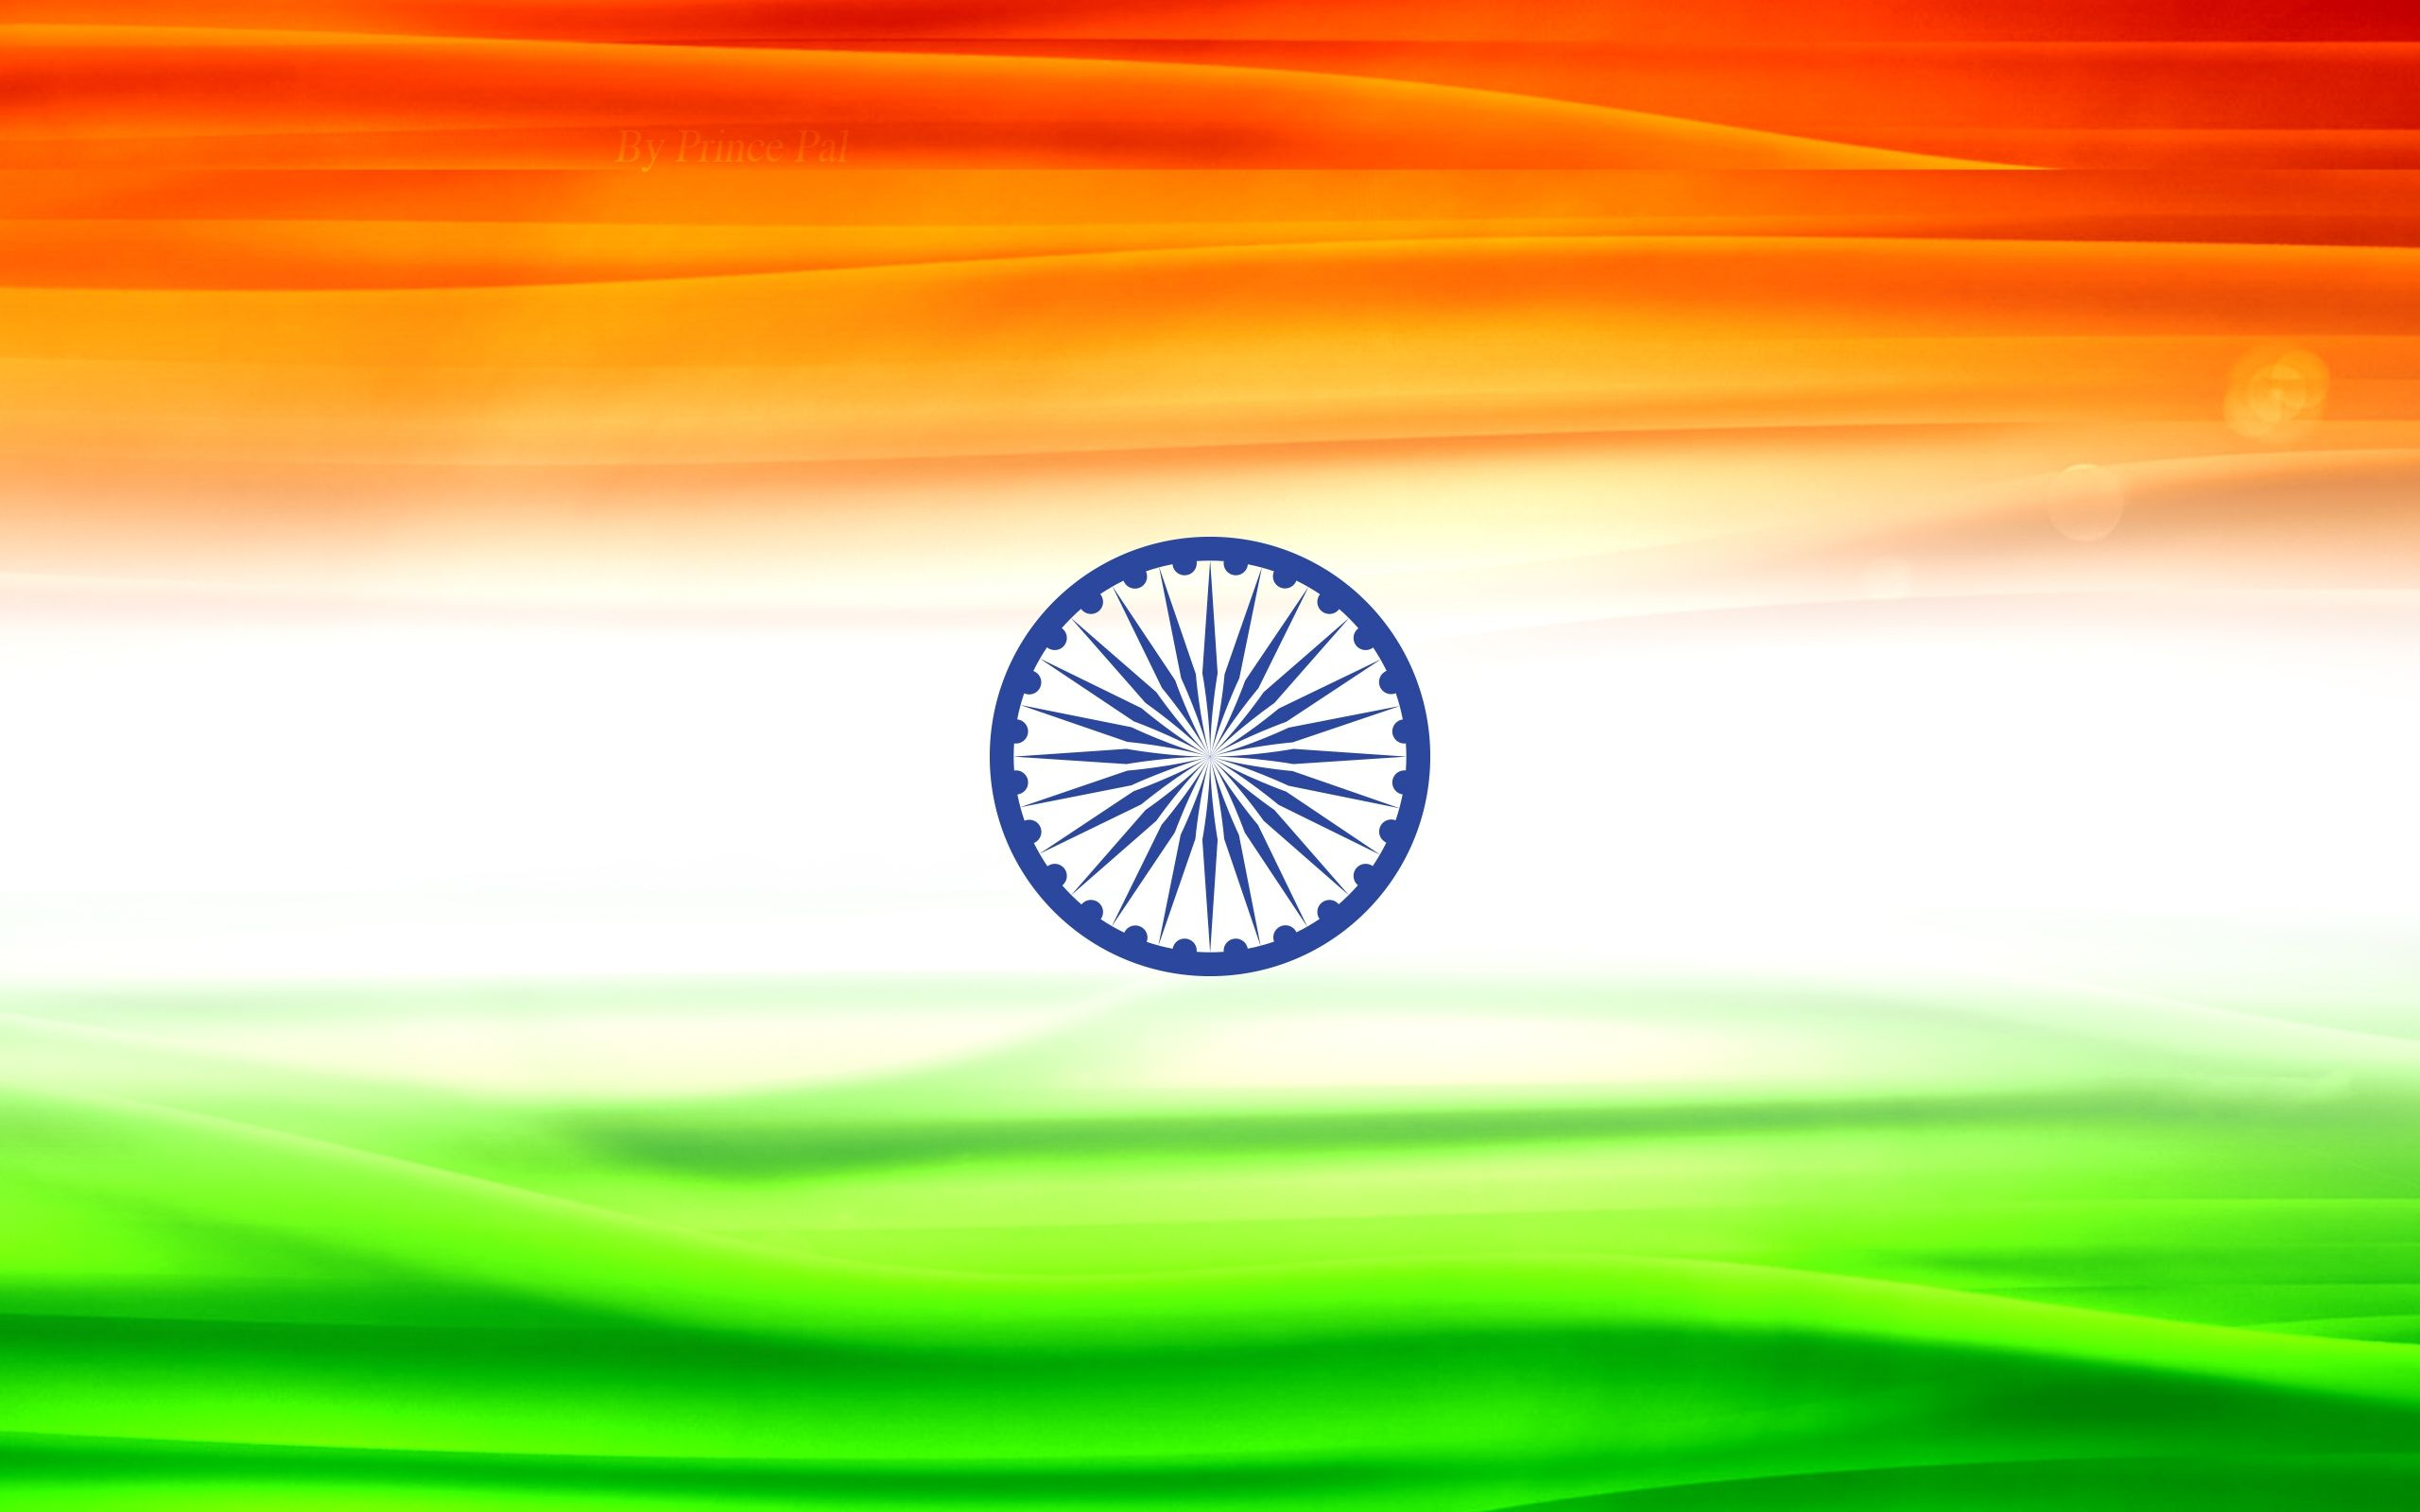 Indian Flag Hd Wallpapers Top Free Indian Flag Hd